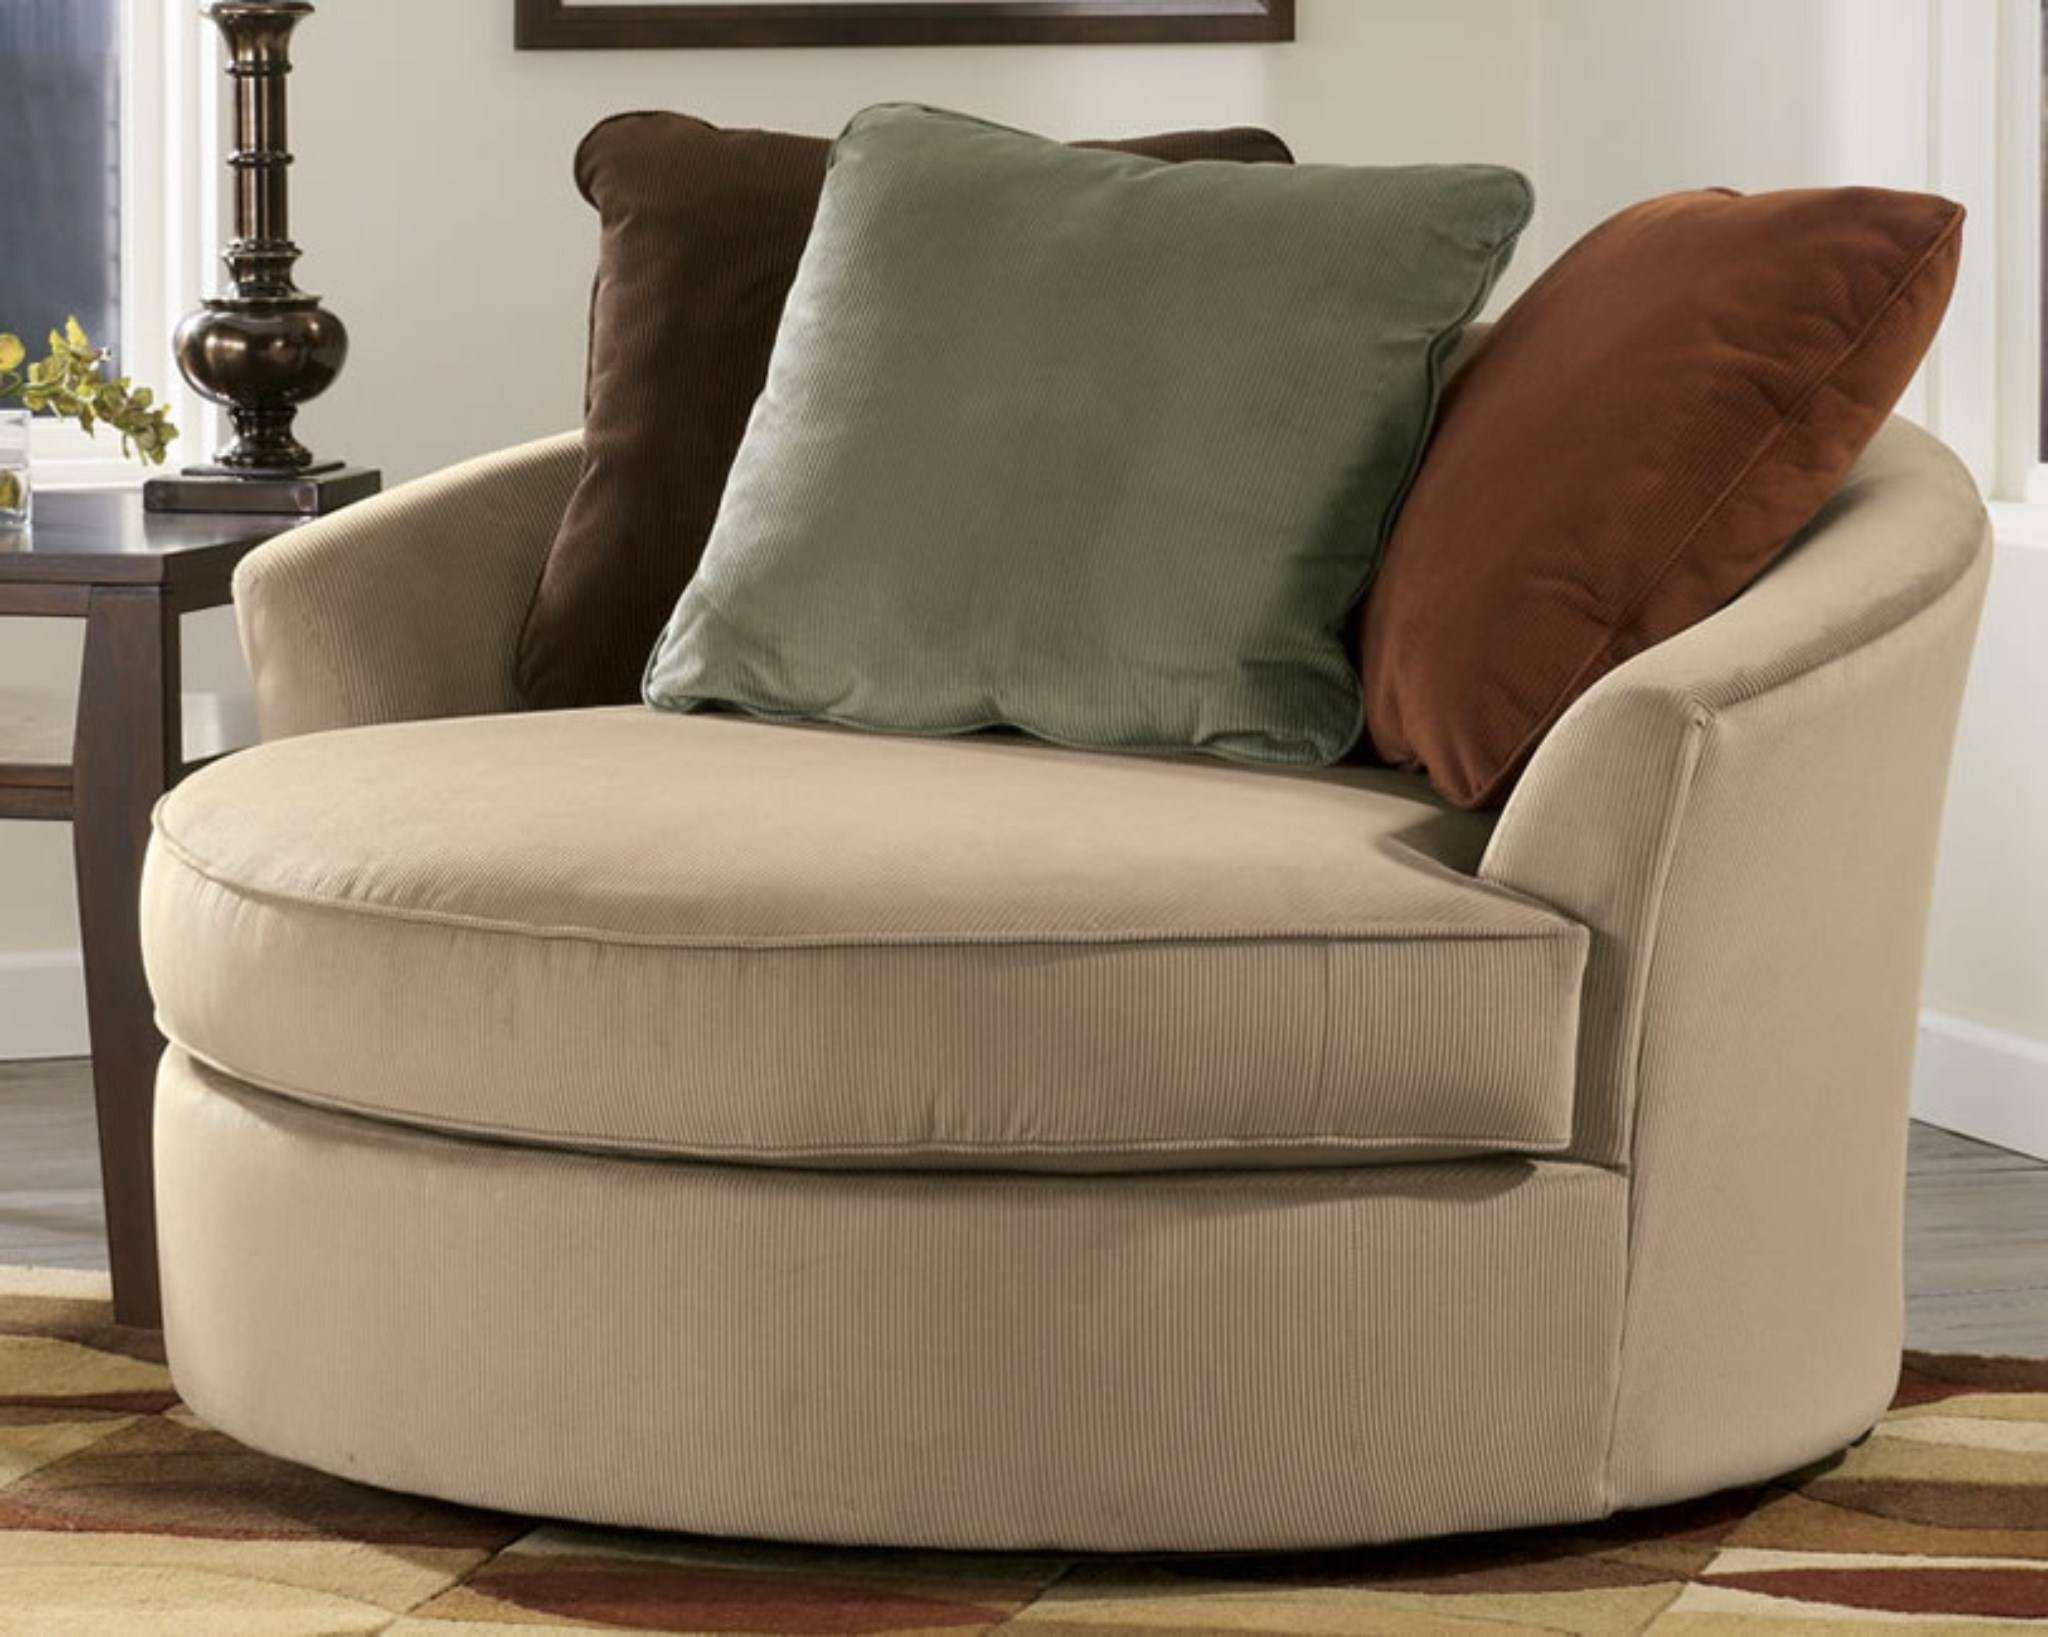 Lovely Circle sofa Chair Home Design Ideas